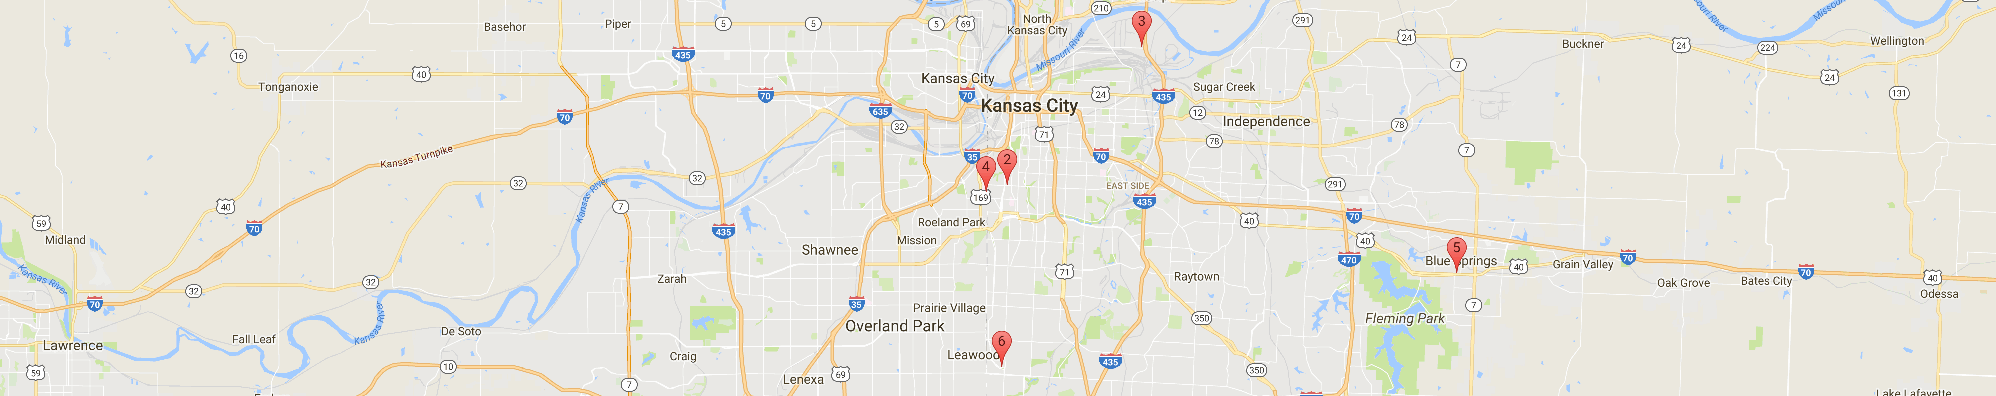 Google local business search results map